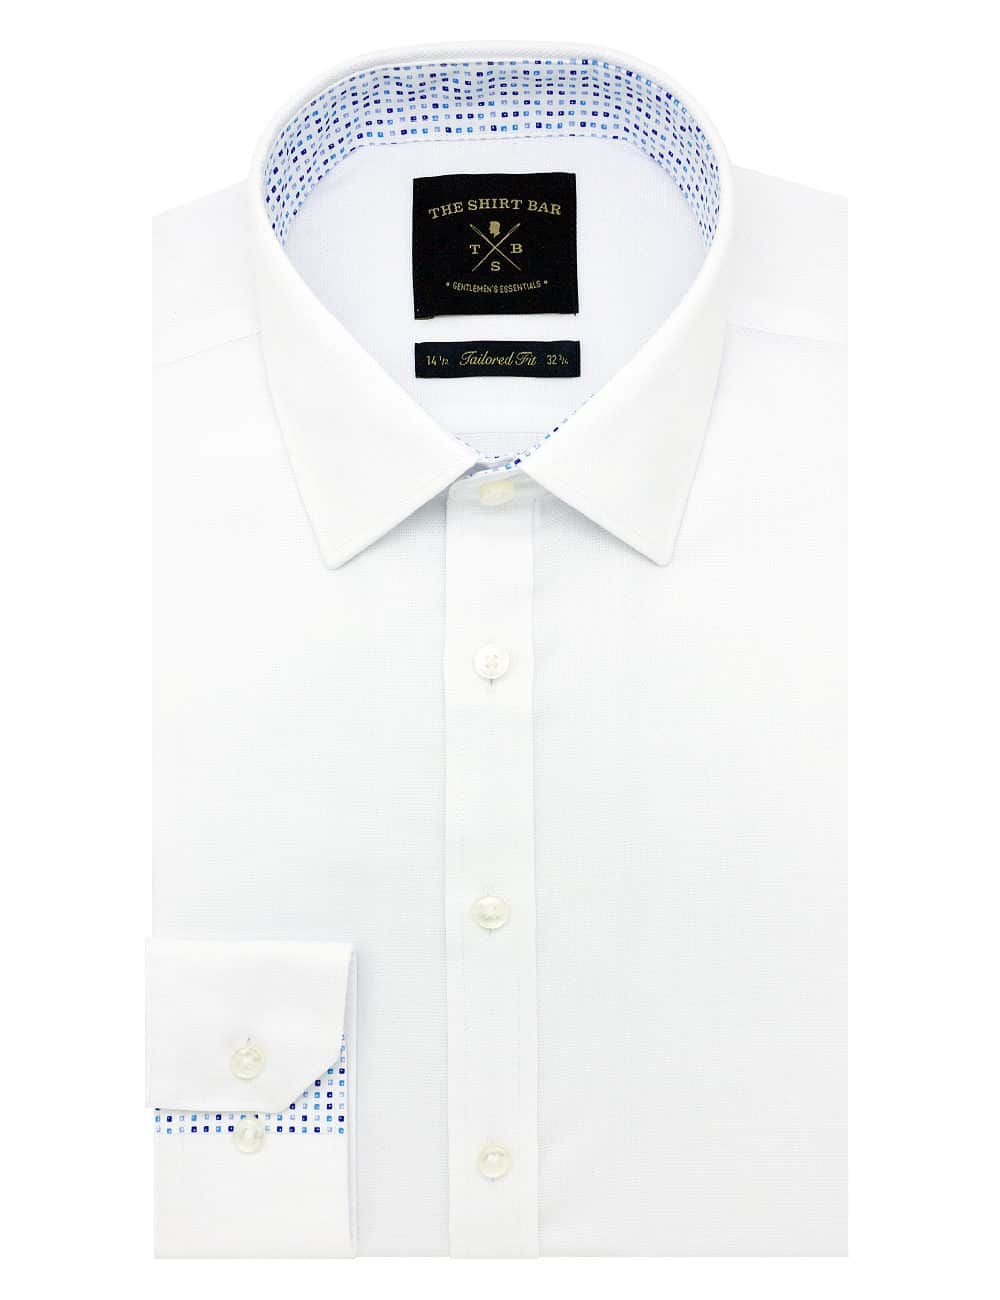 TF Solid White Weave Cotton Blend Spill Resistant Long Sleeve Single Cuff Shirt TF2F1.15